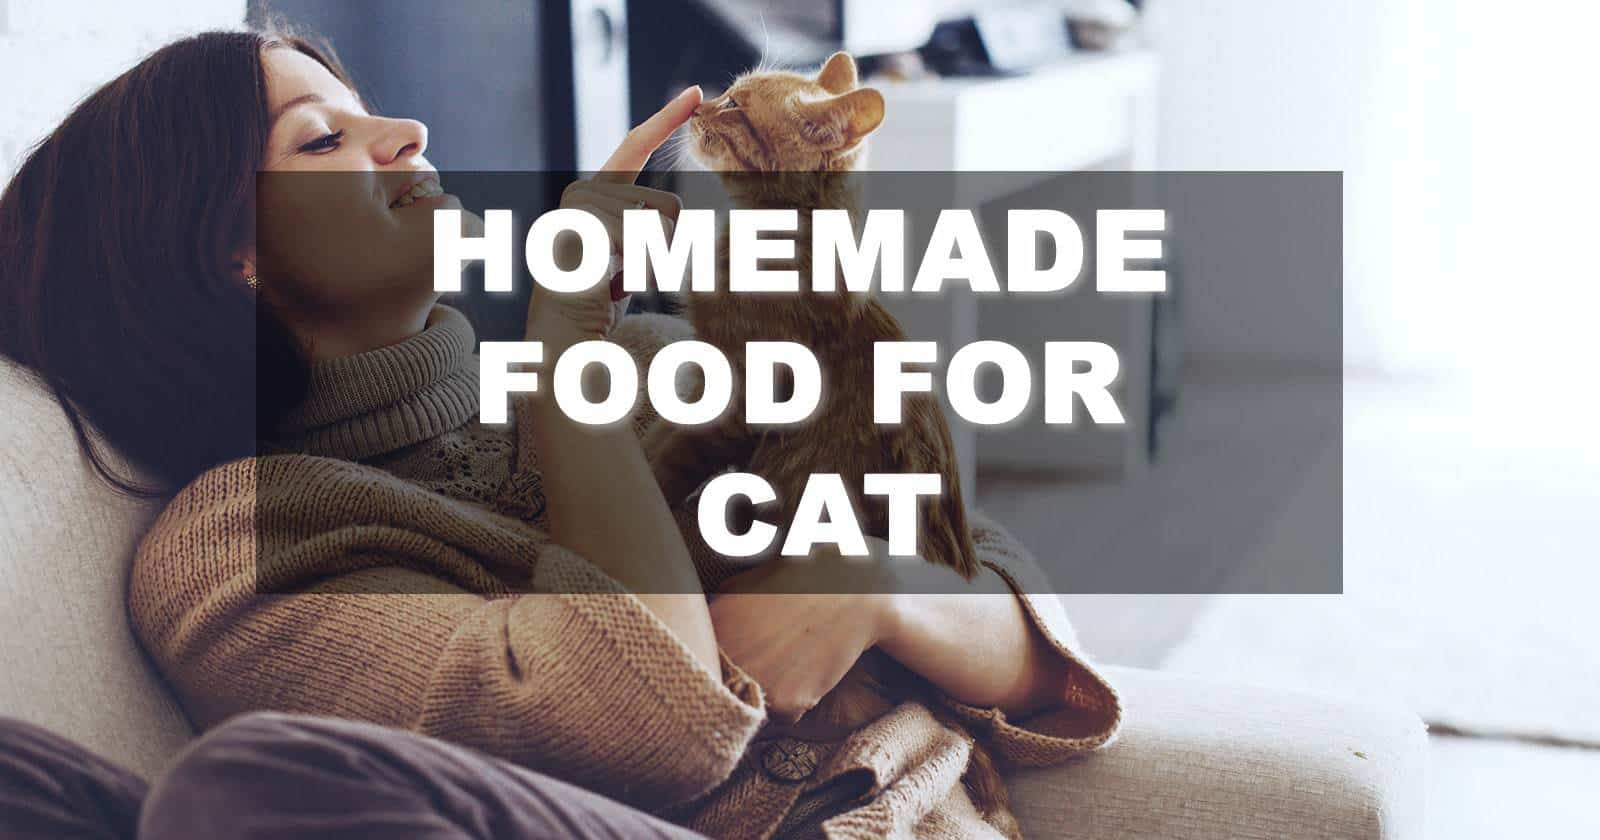 Homemade Food For Cat